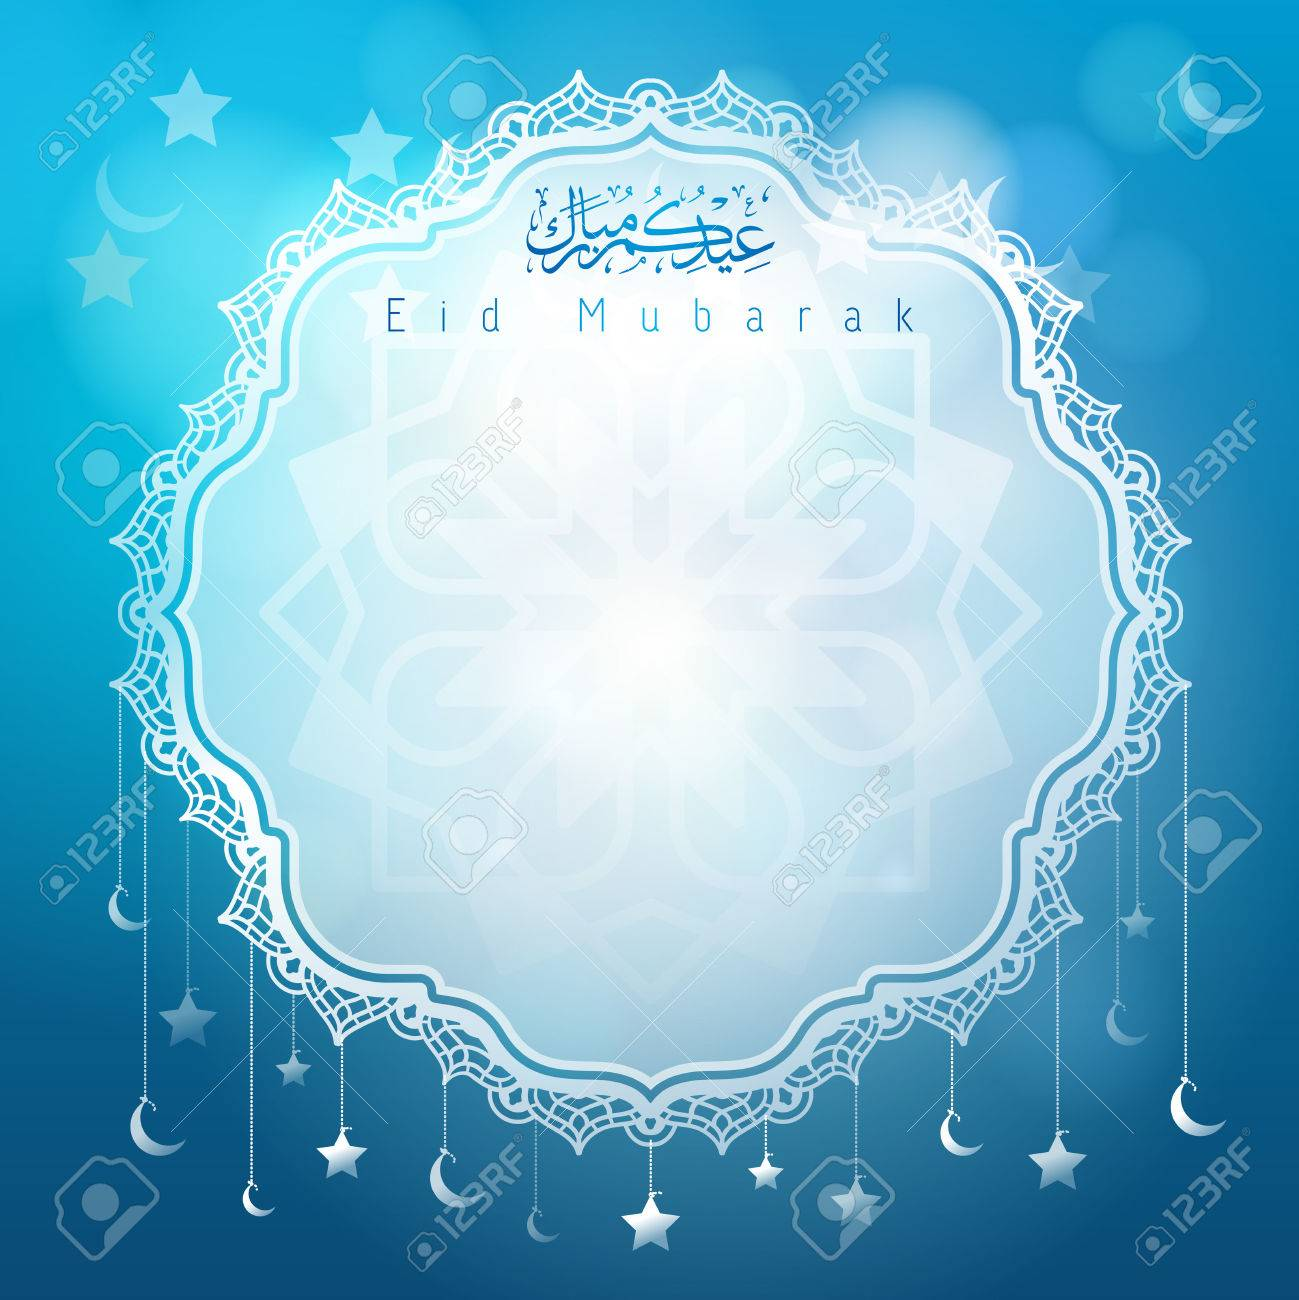 Greeting card background for islamic celebration eid mubarak royalty greeting card background for islamic celebration eid mubarak stock vector 56570532 m4hsunfo